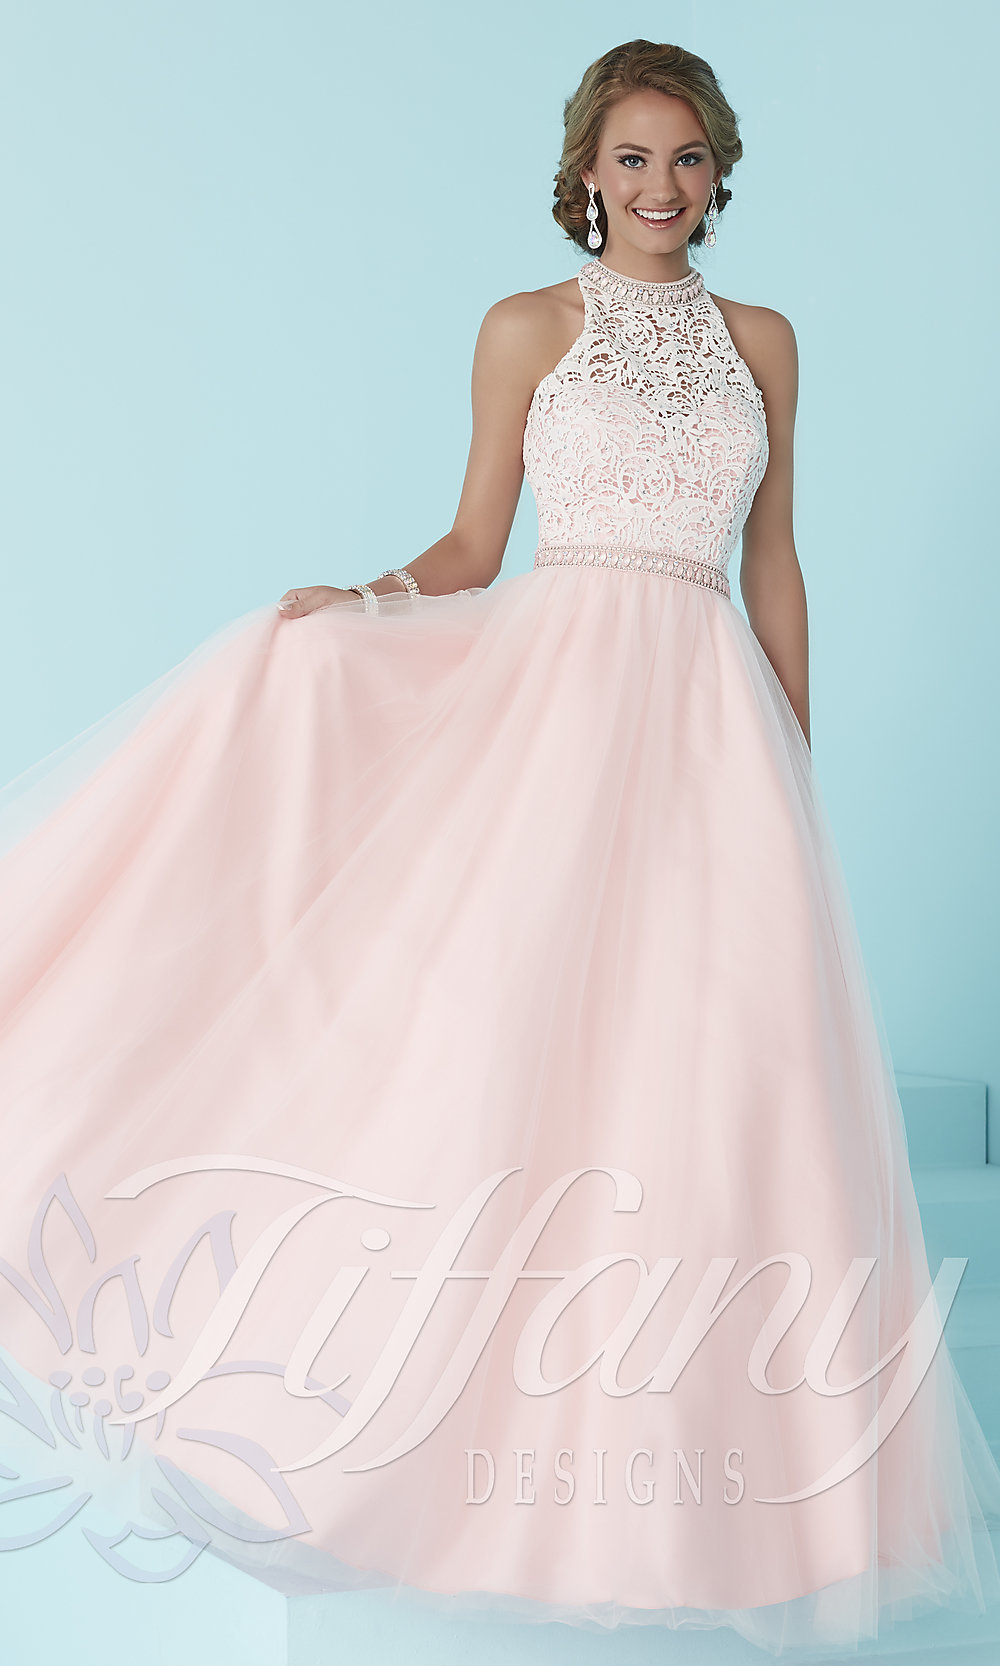 Tiffany prom dresses spring formal dresses for Immediate resource wedding dresses